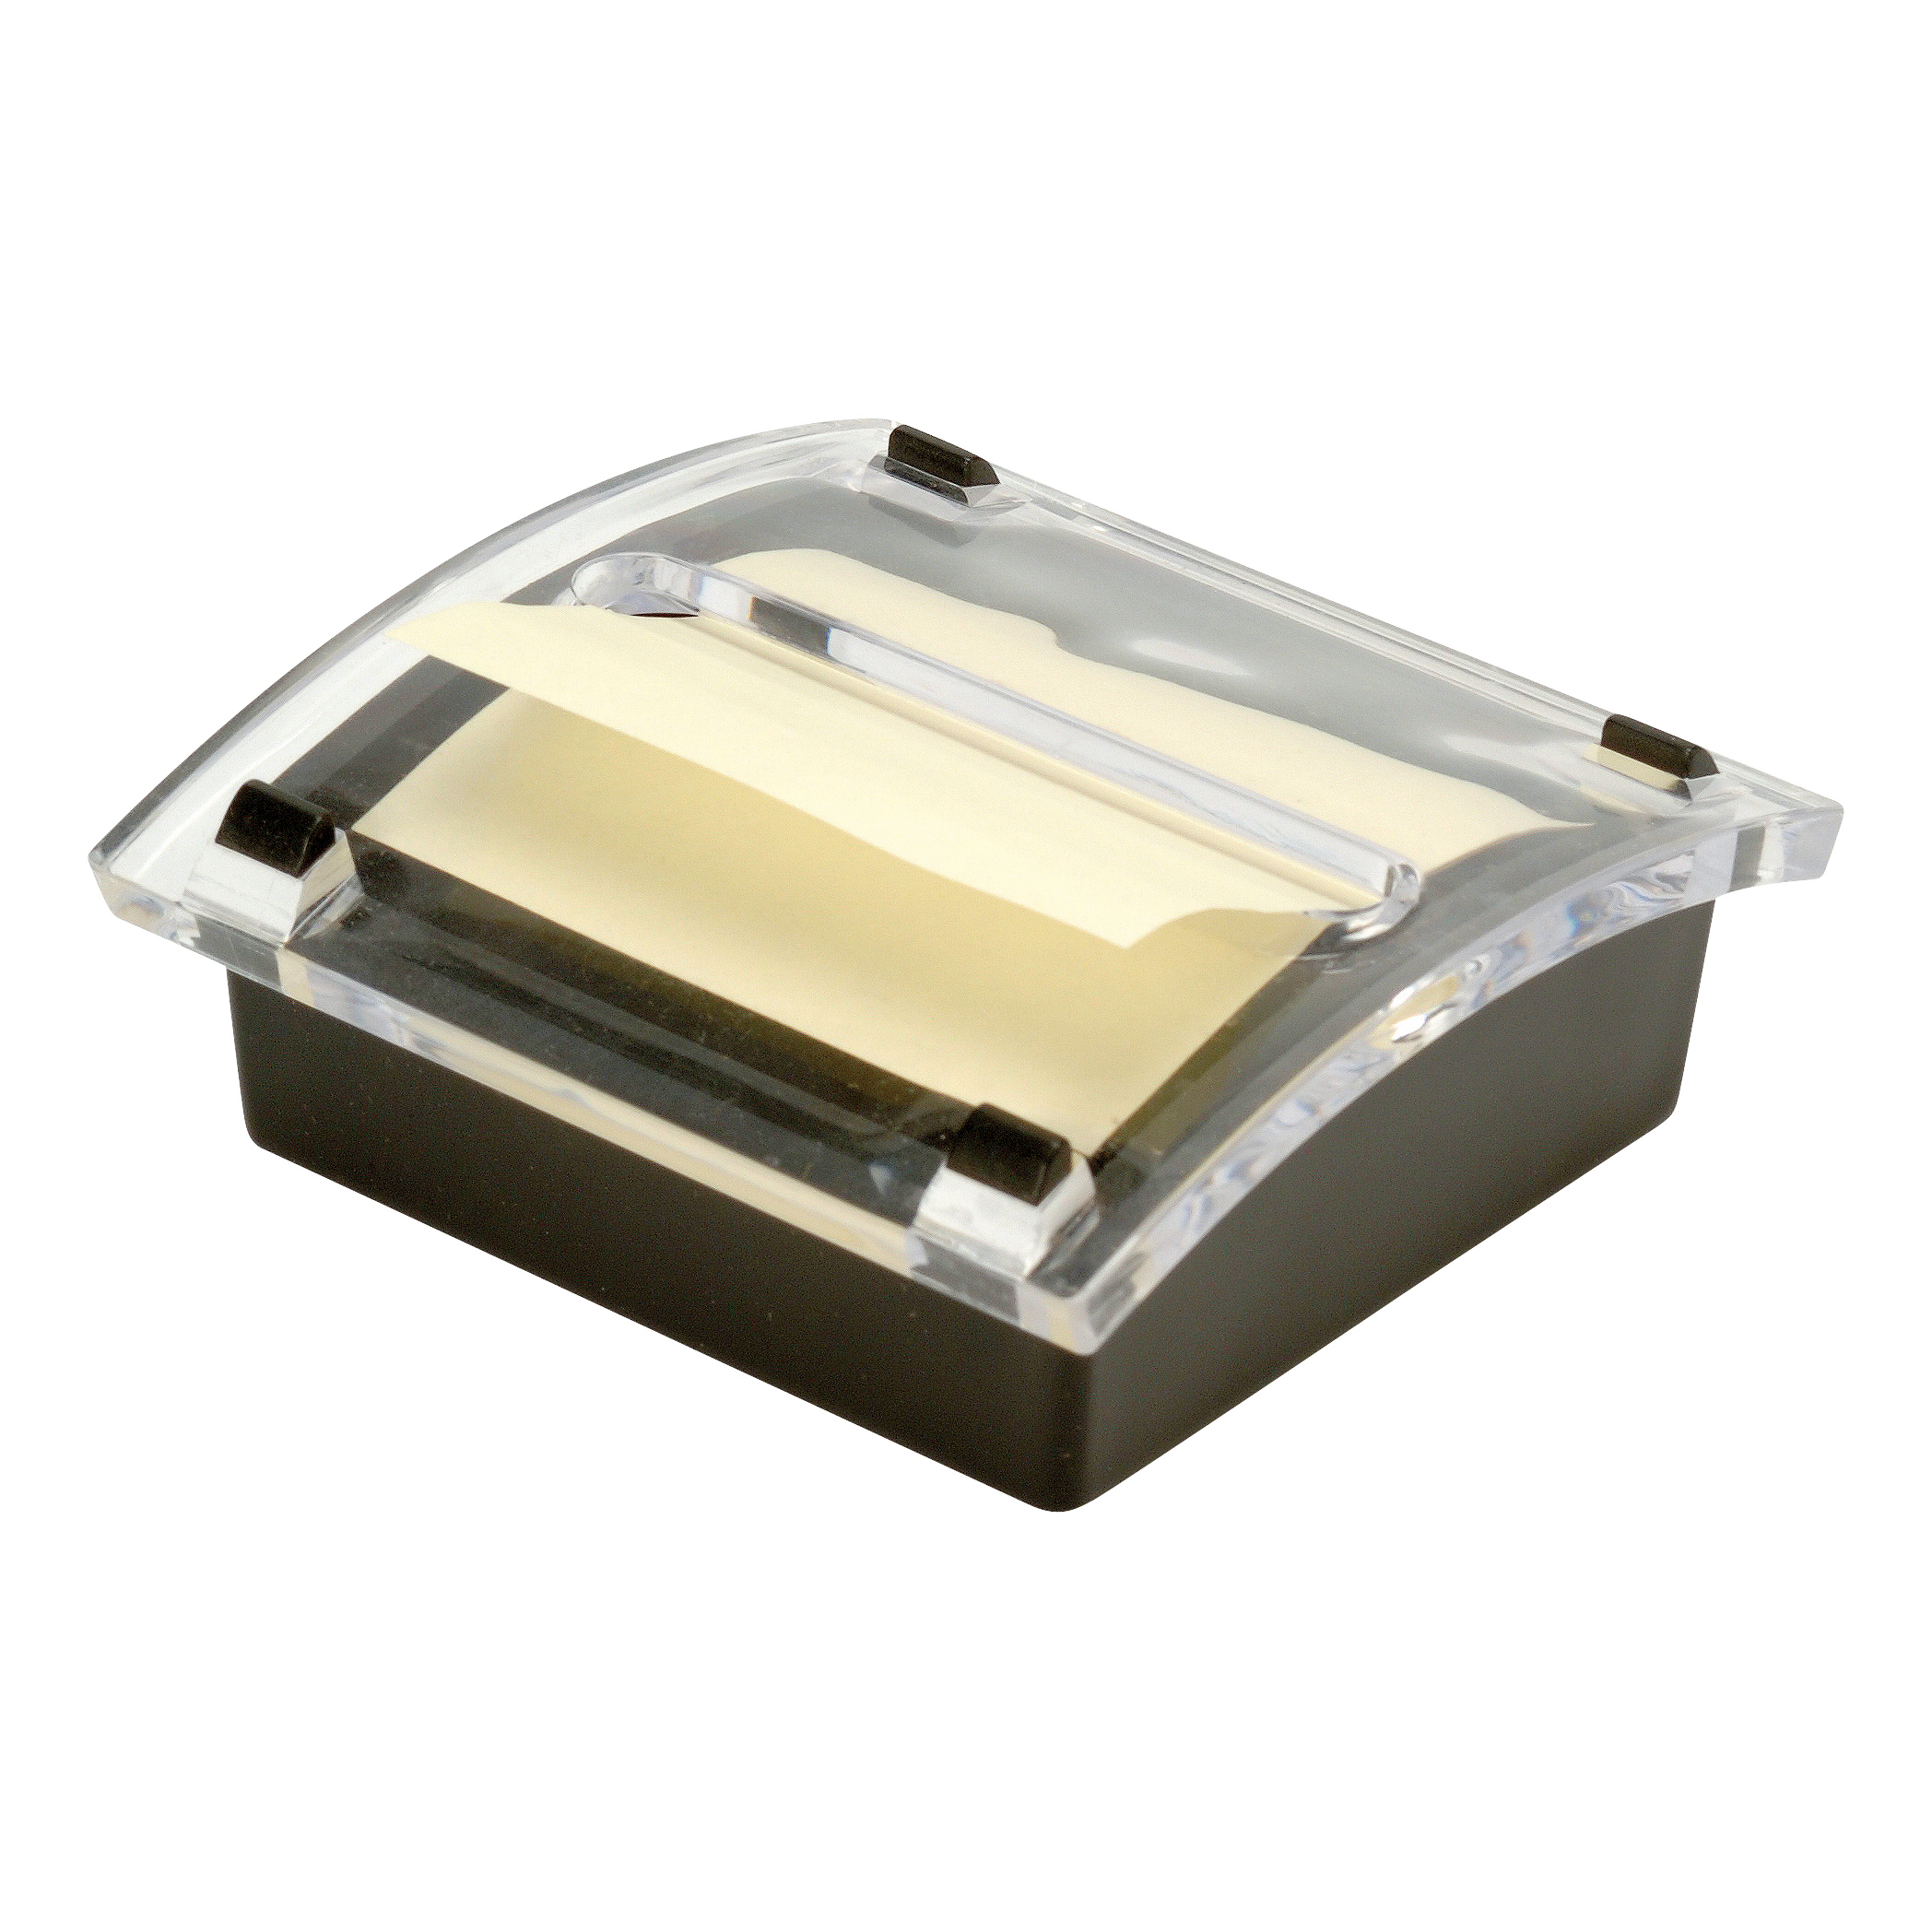 5 Star Office Re Move Concertina Note Dispenser Acrylic